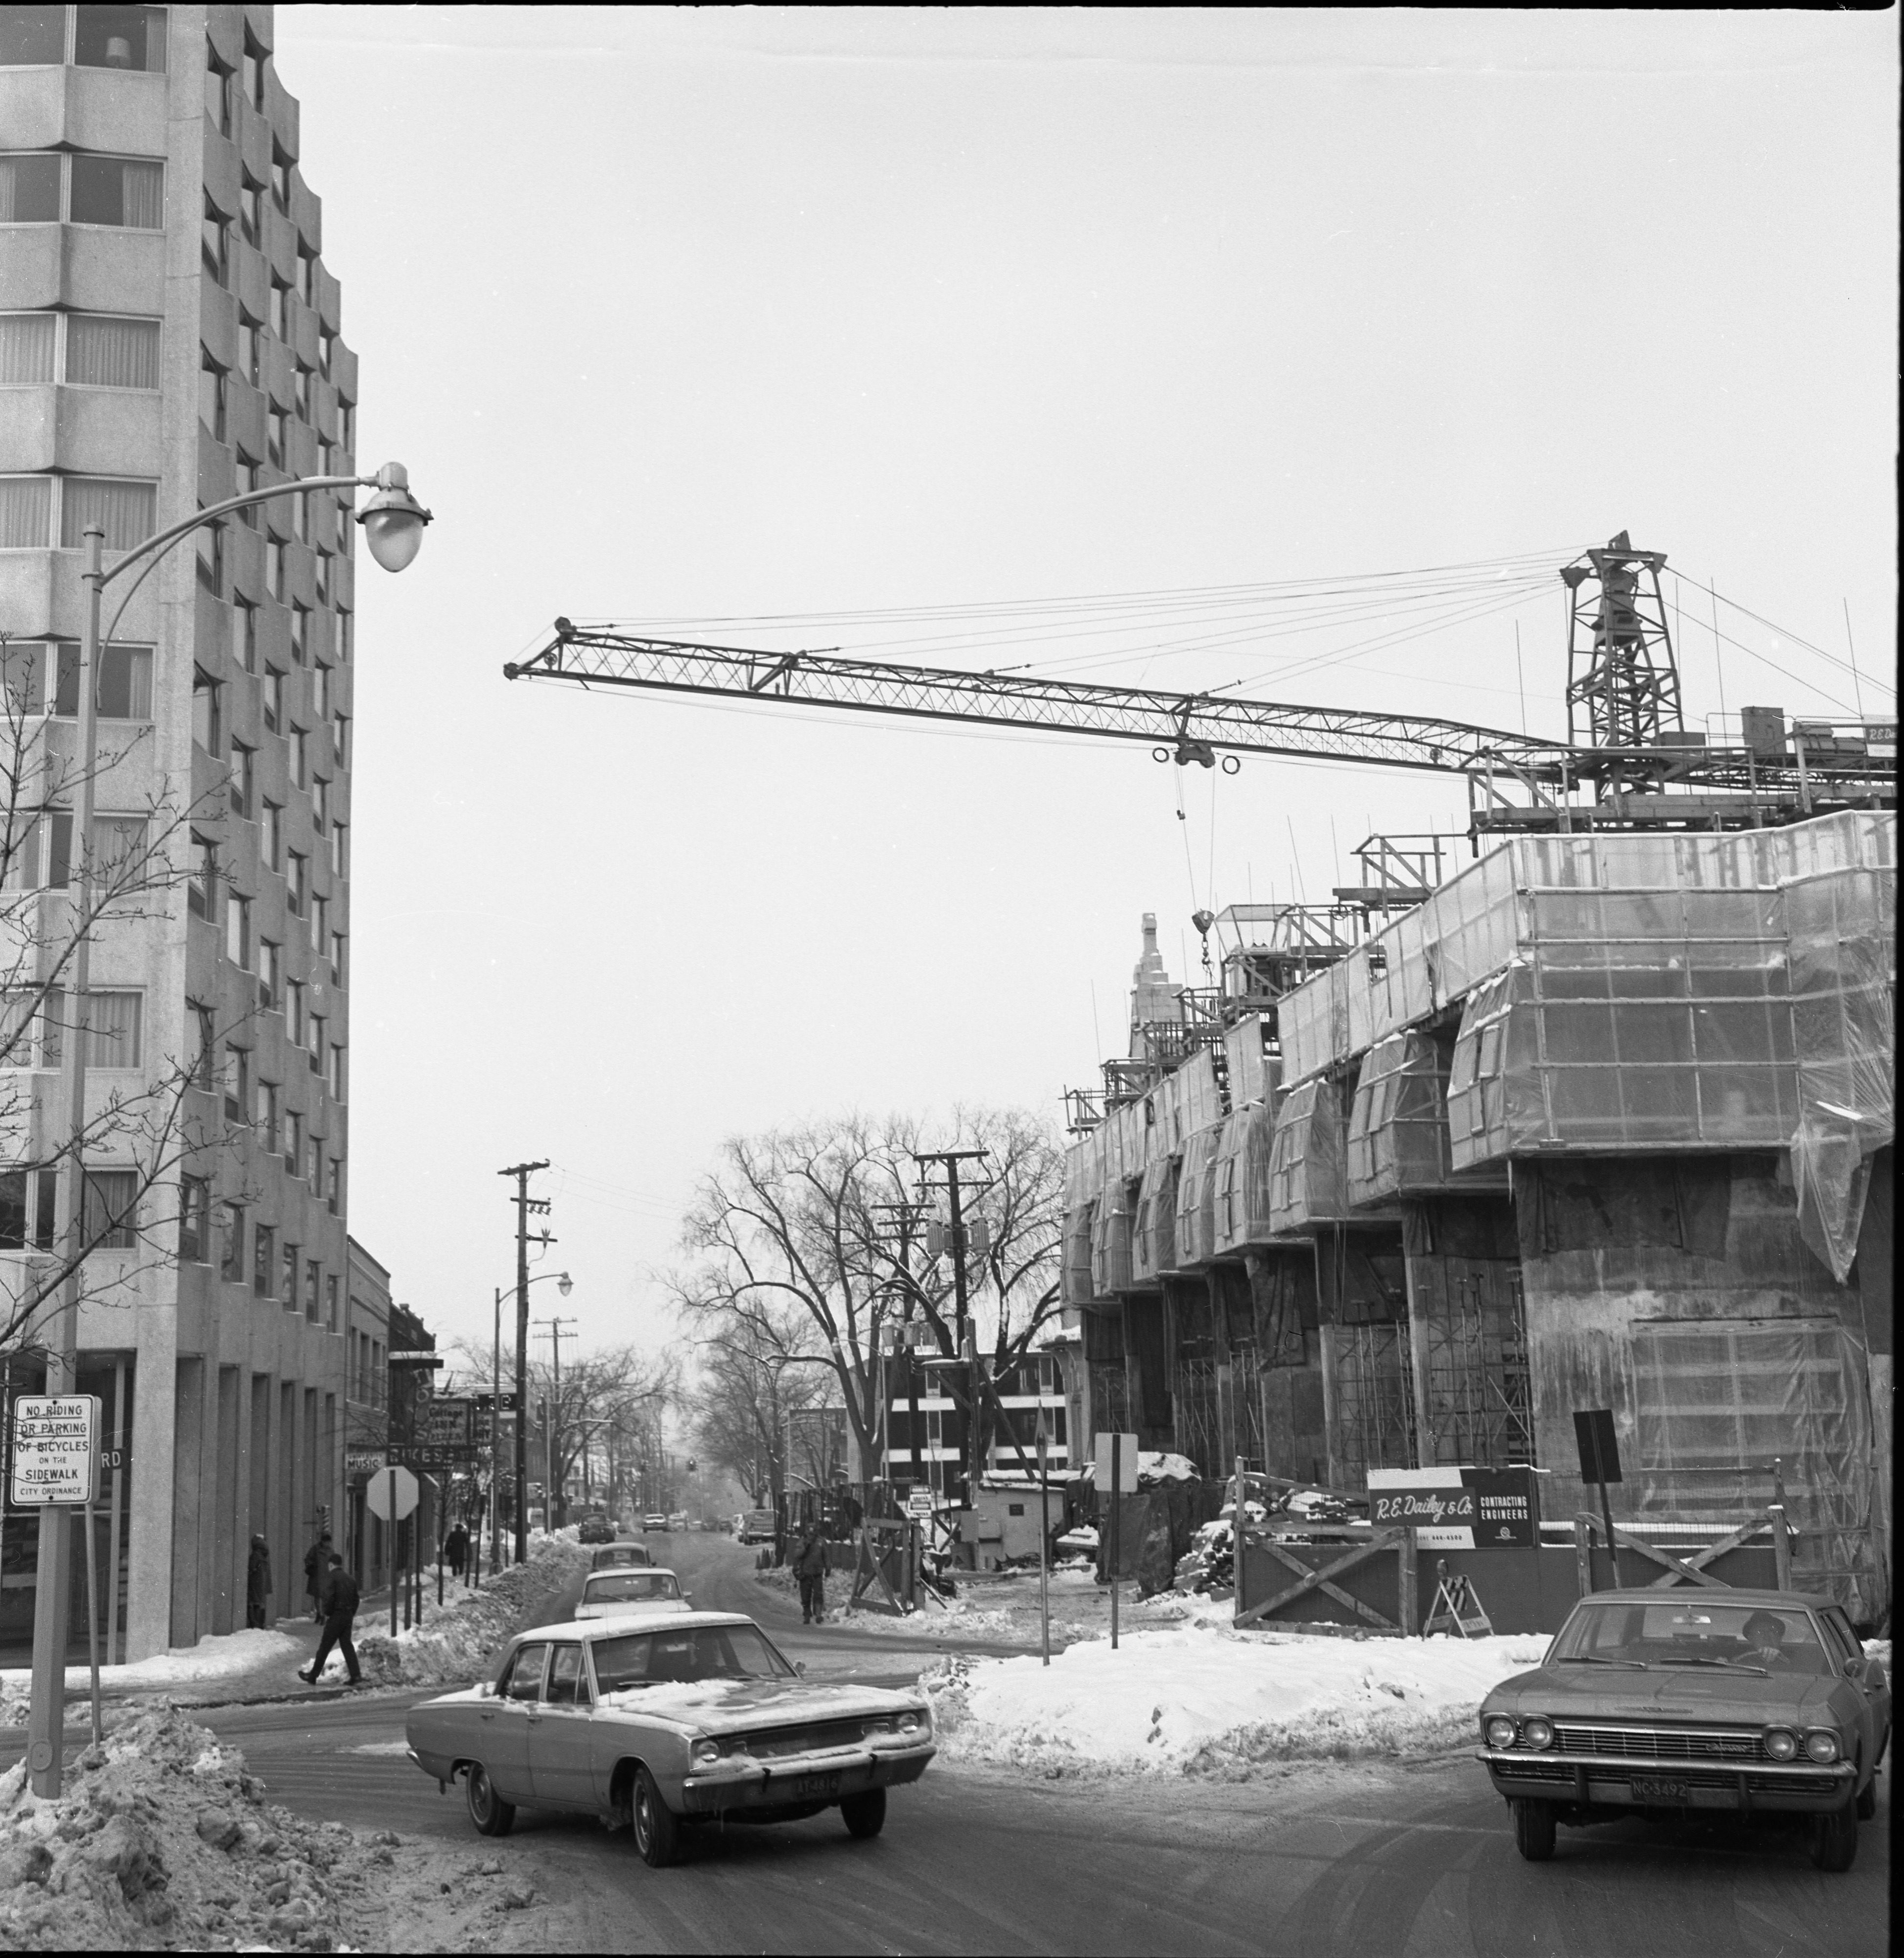 Construction Of Tower Plaza Looking West On William, February 3, 1967 image